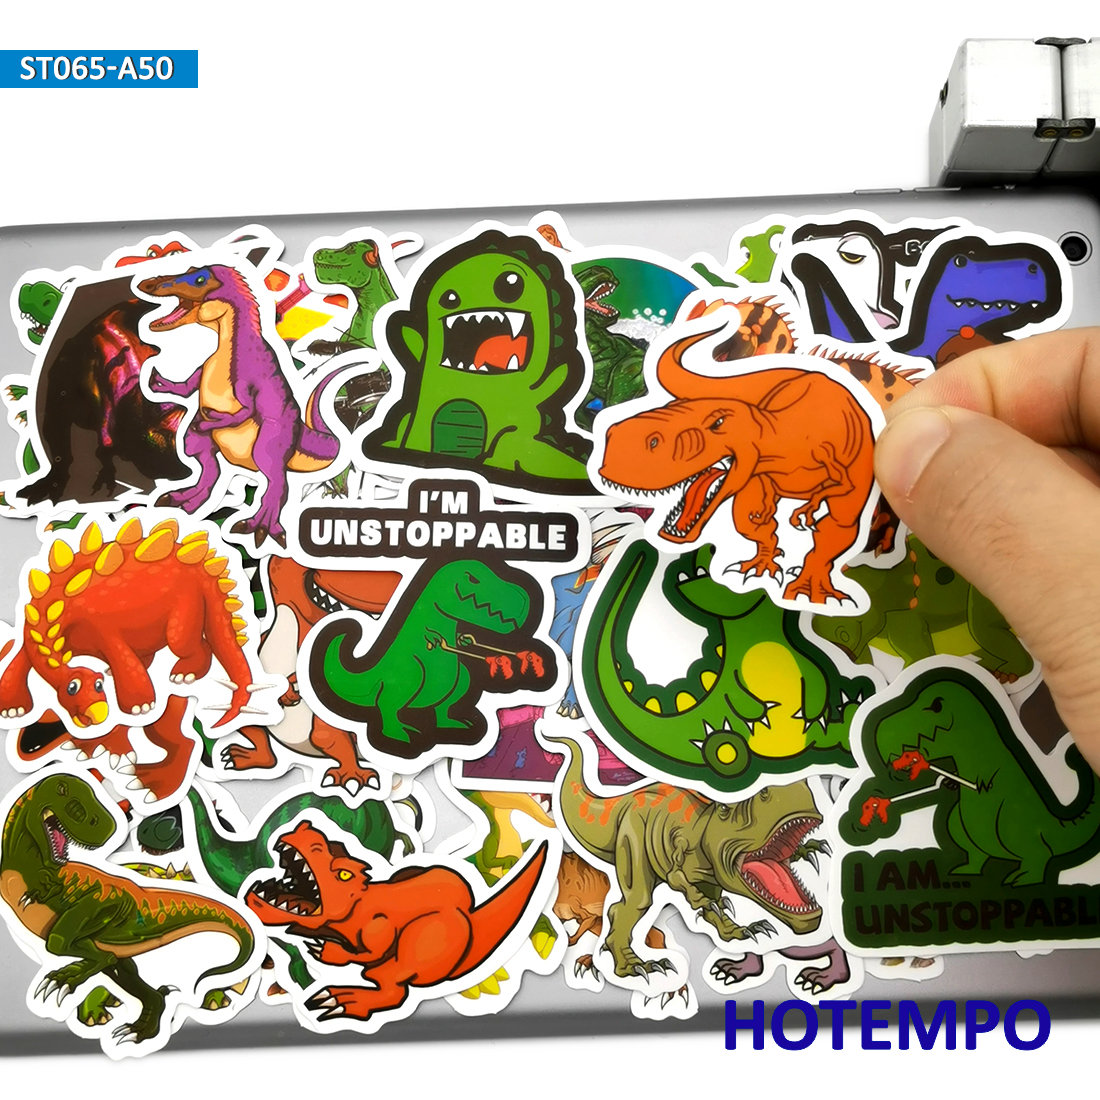 50pcs Cute Dino Anime Dinosaurs Stickers Toy For Children Kids Gift Scrapbooking Stationery Mobile Phone Laptop Cartoon Stickers